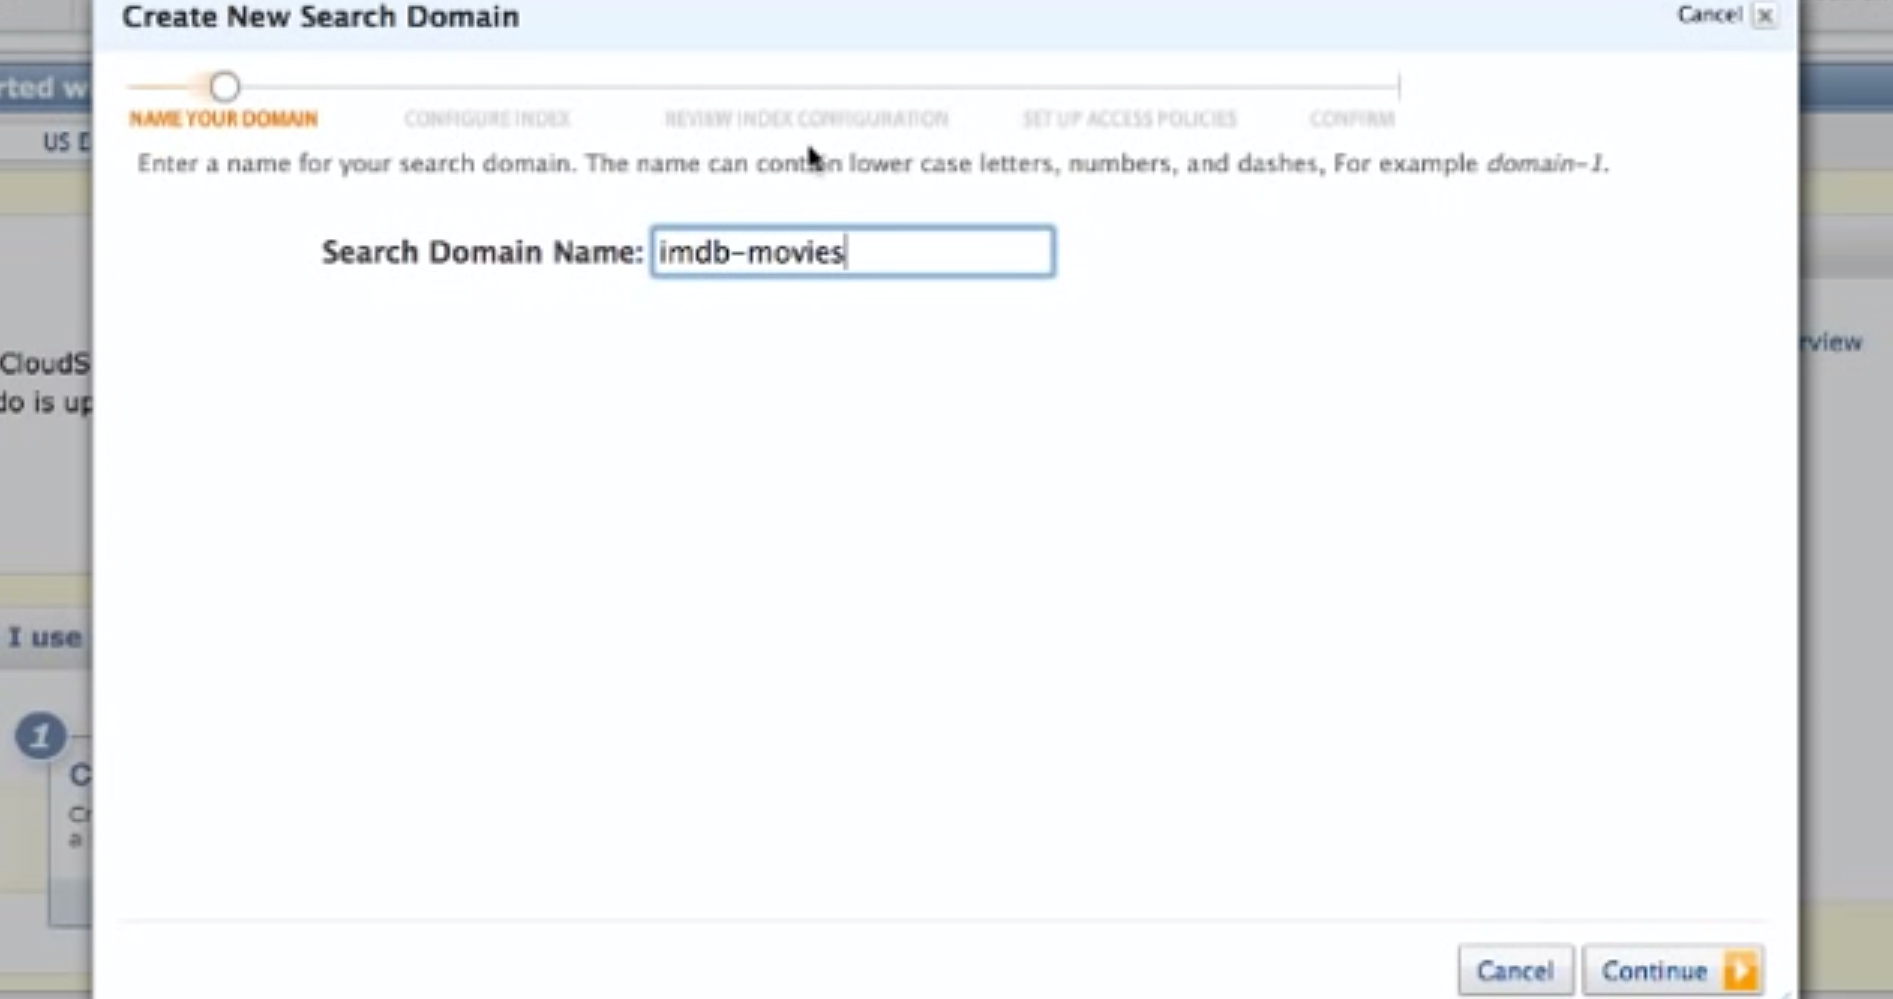 AmazonCloudSearch-WebsiteSearch-NewSearch.